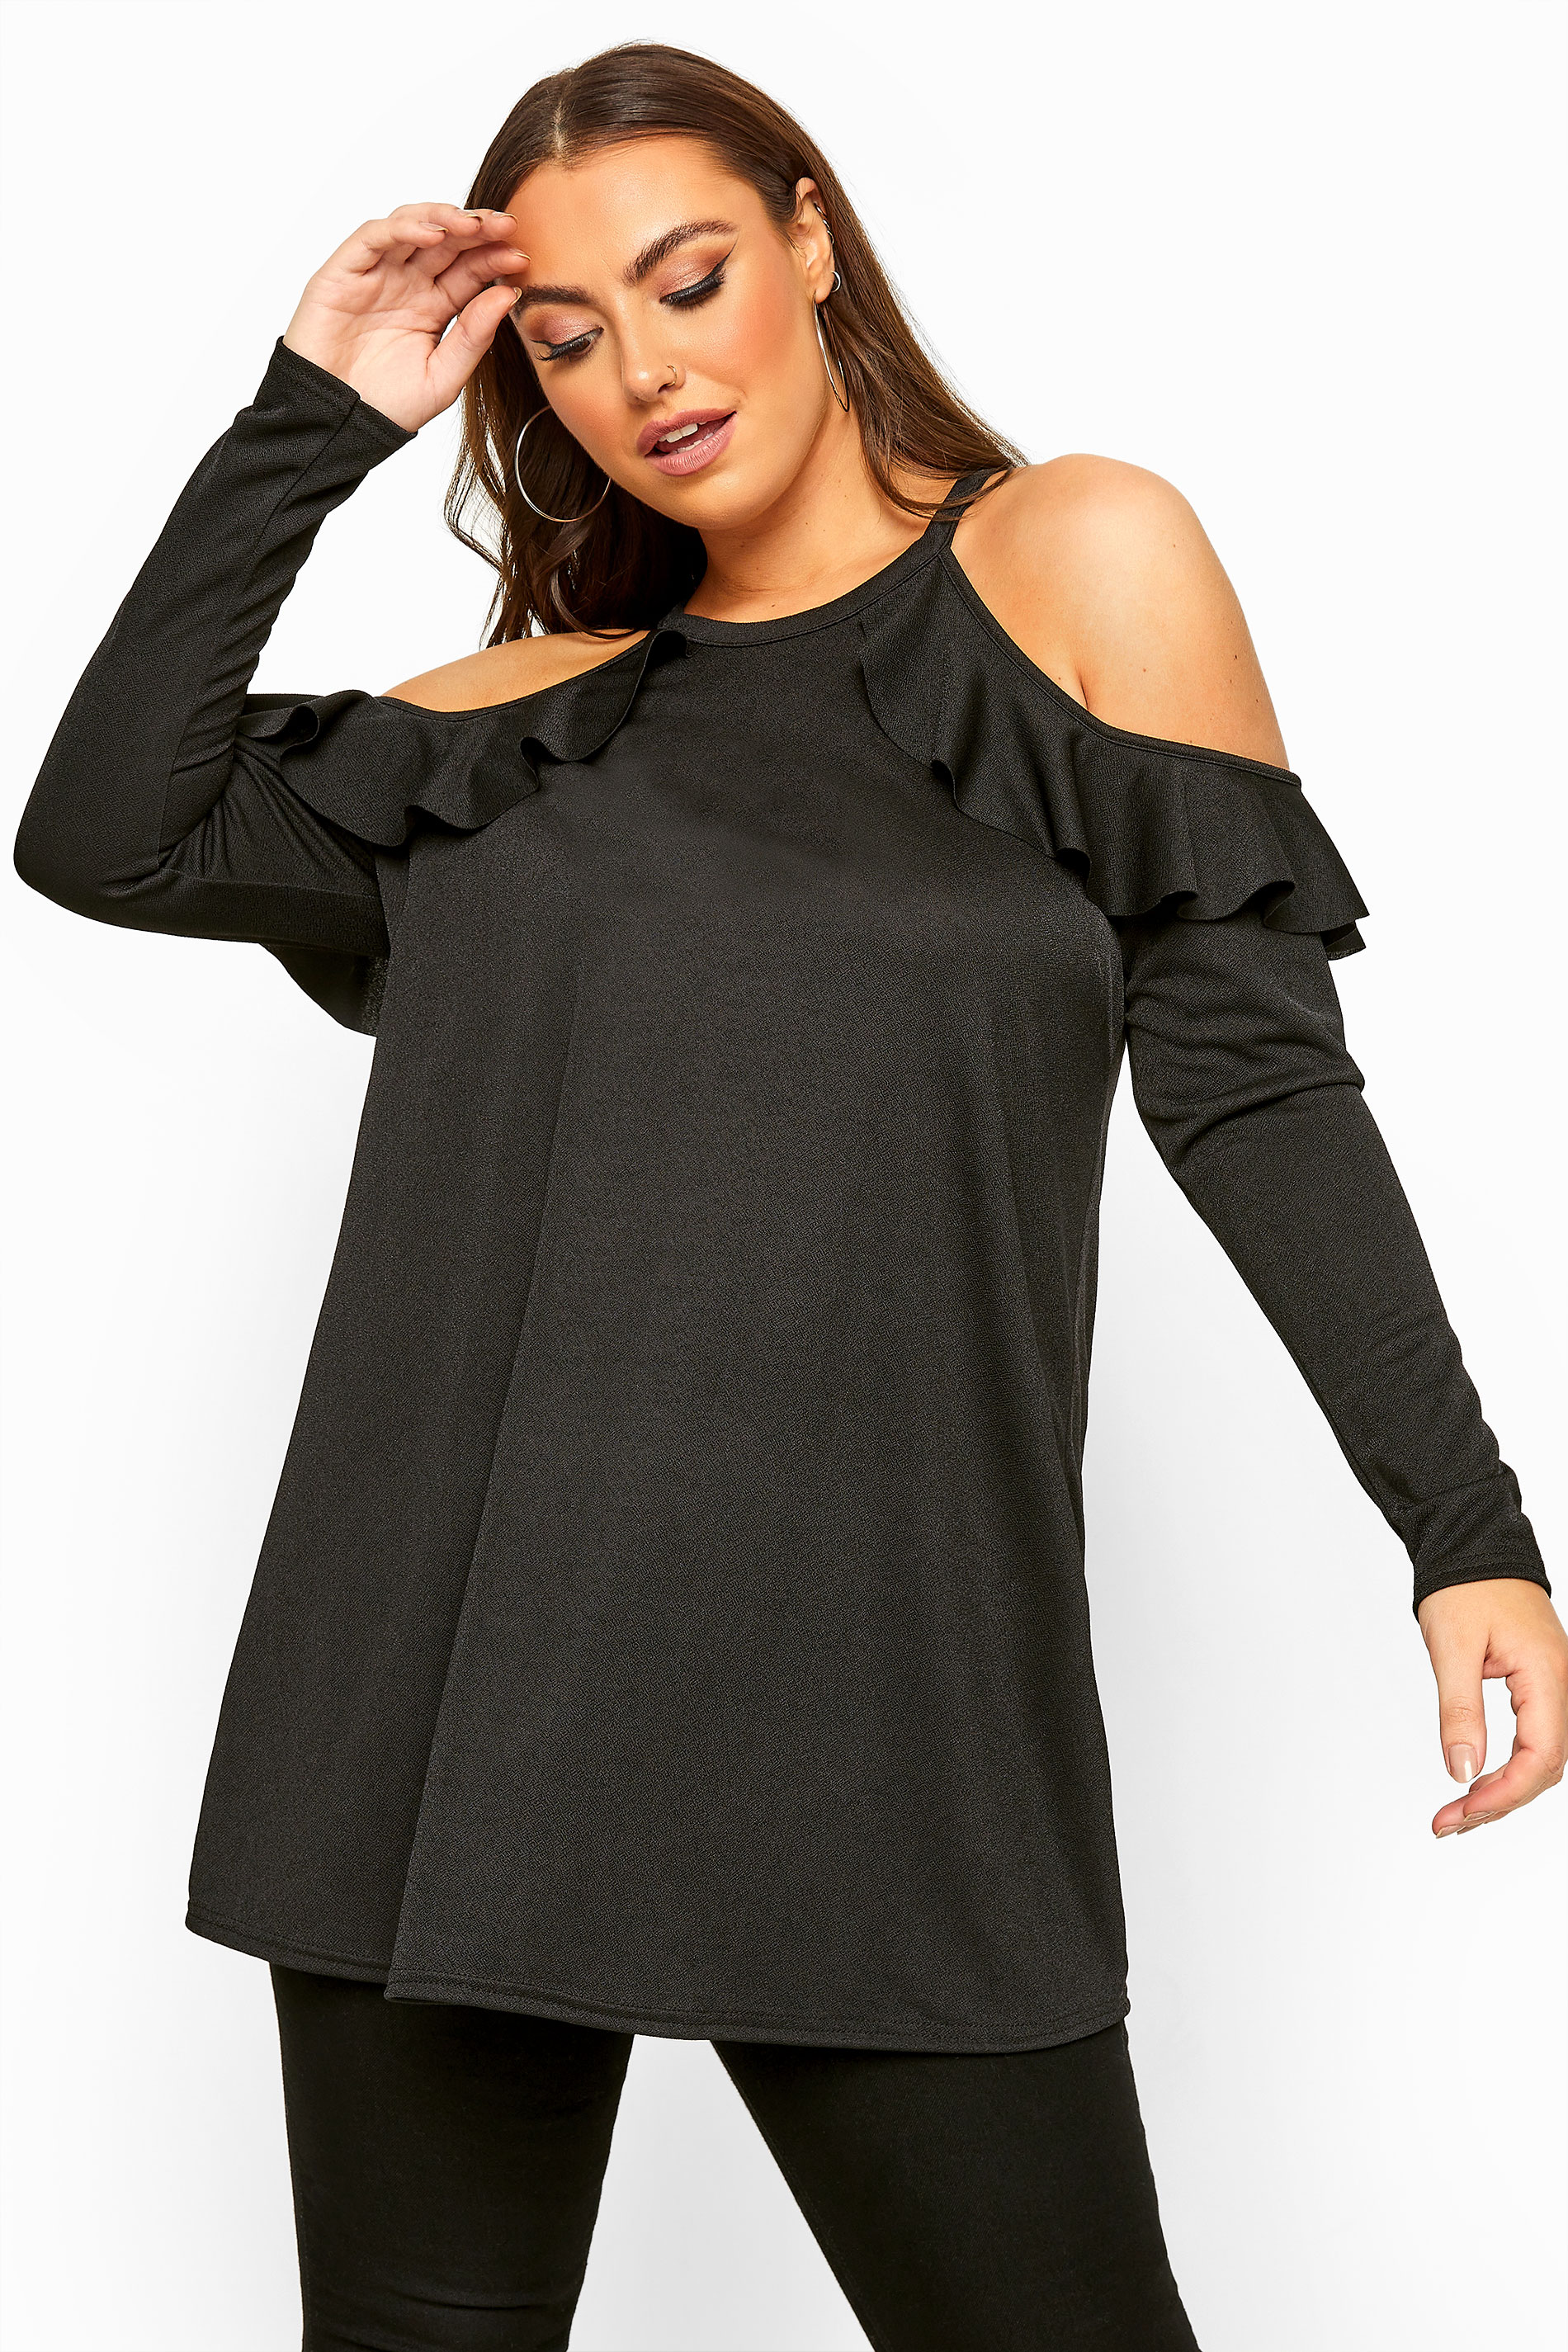 LIMITED COLLECTION Black Cold Shoulder Frill Scuba Top